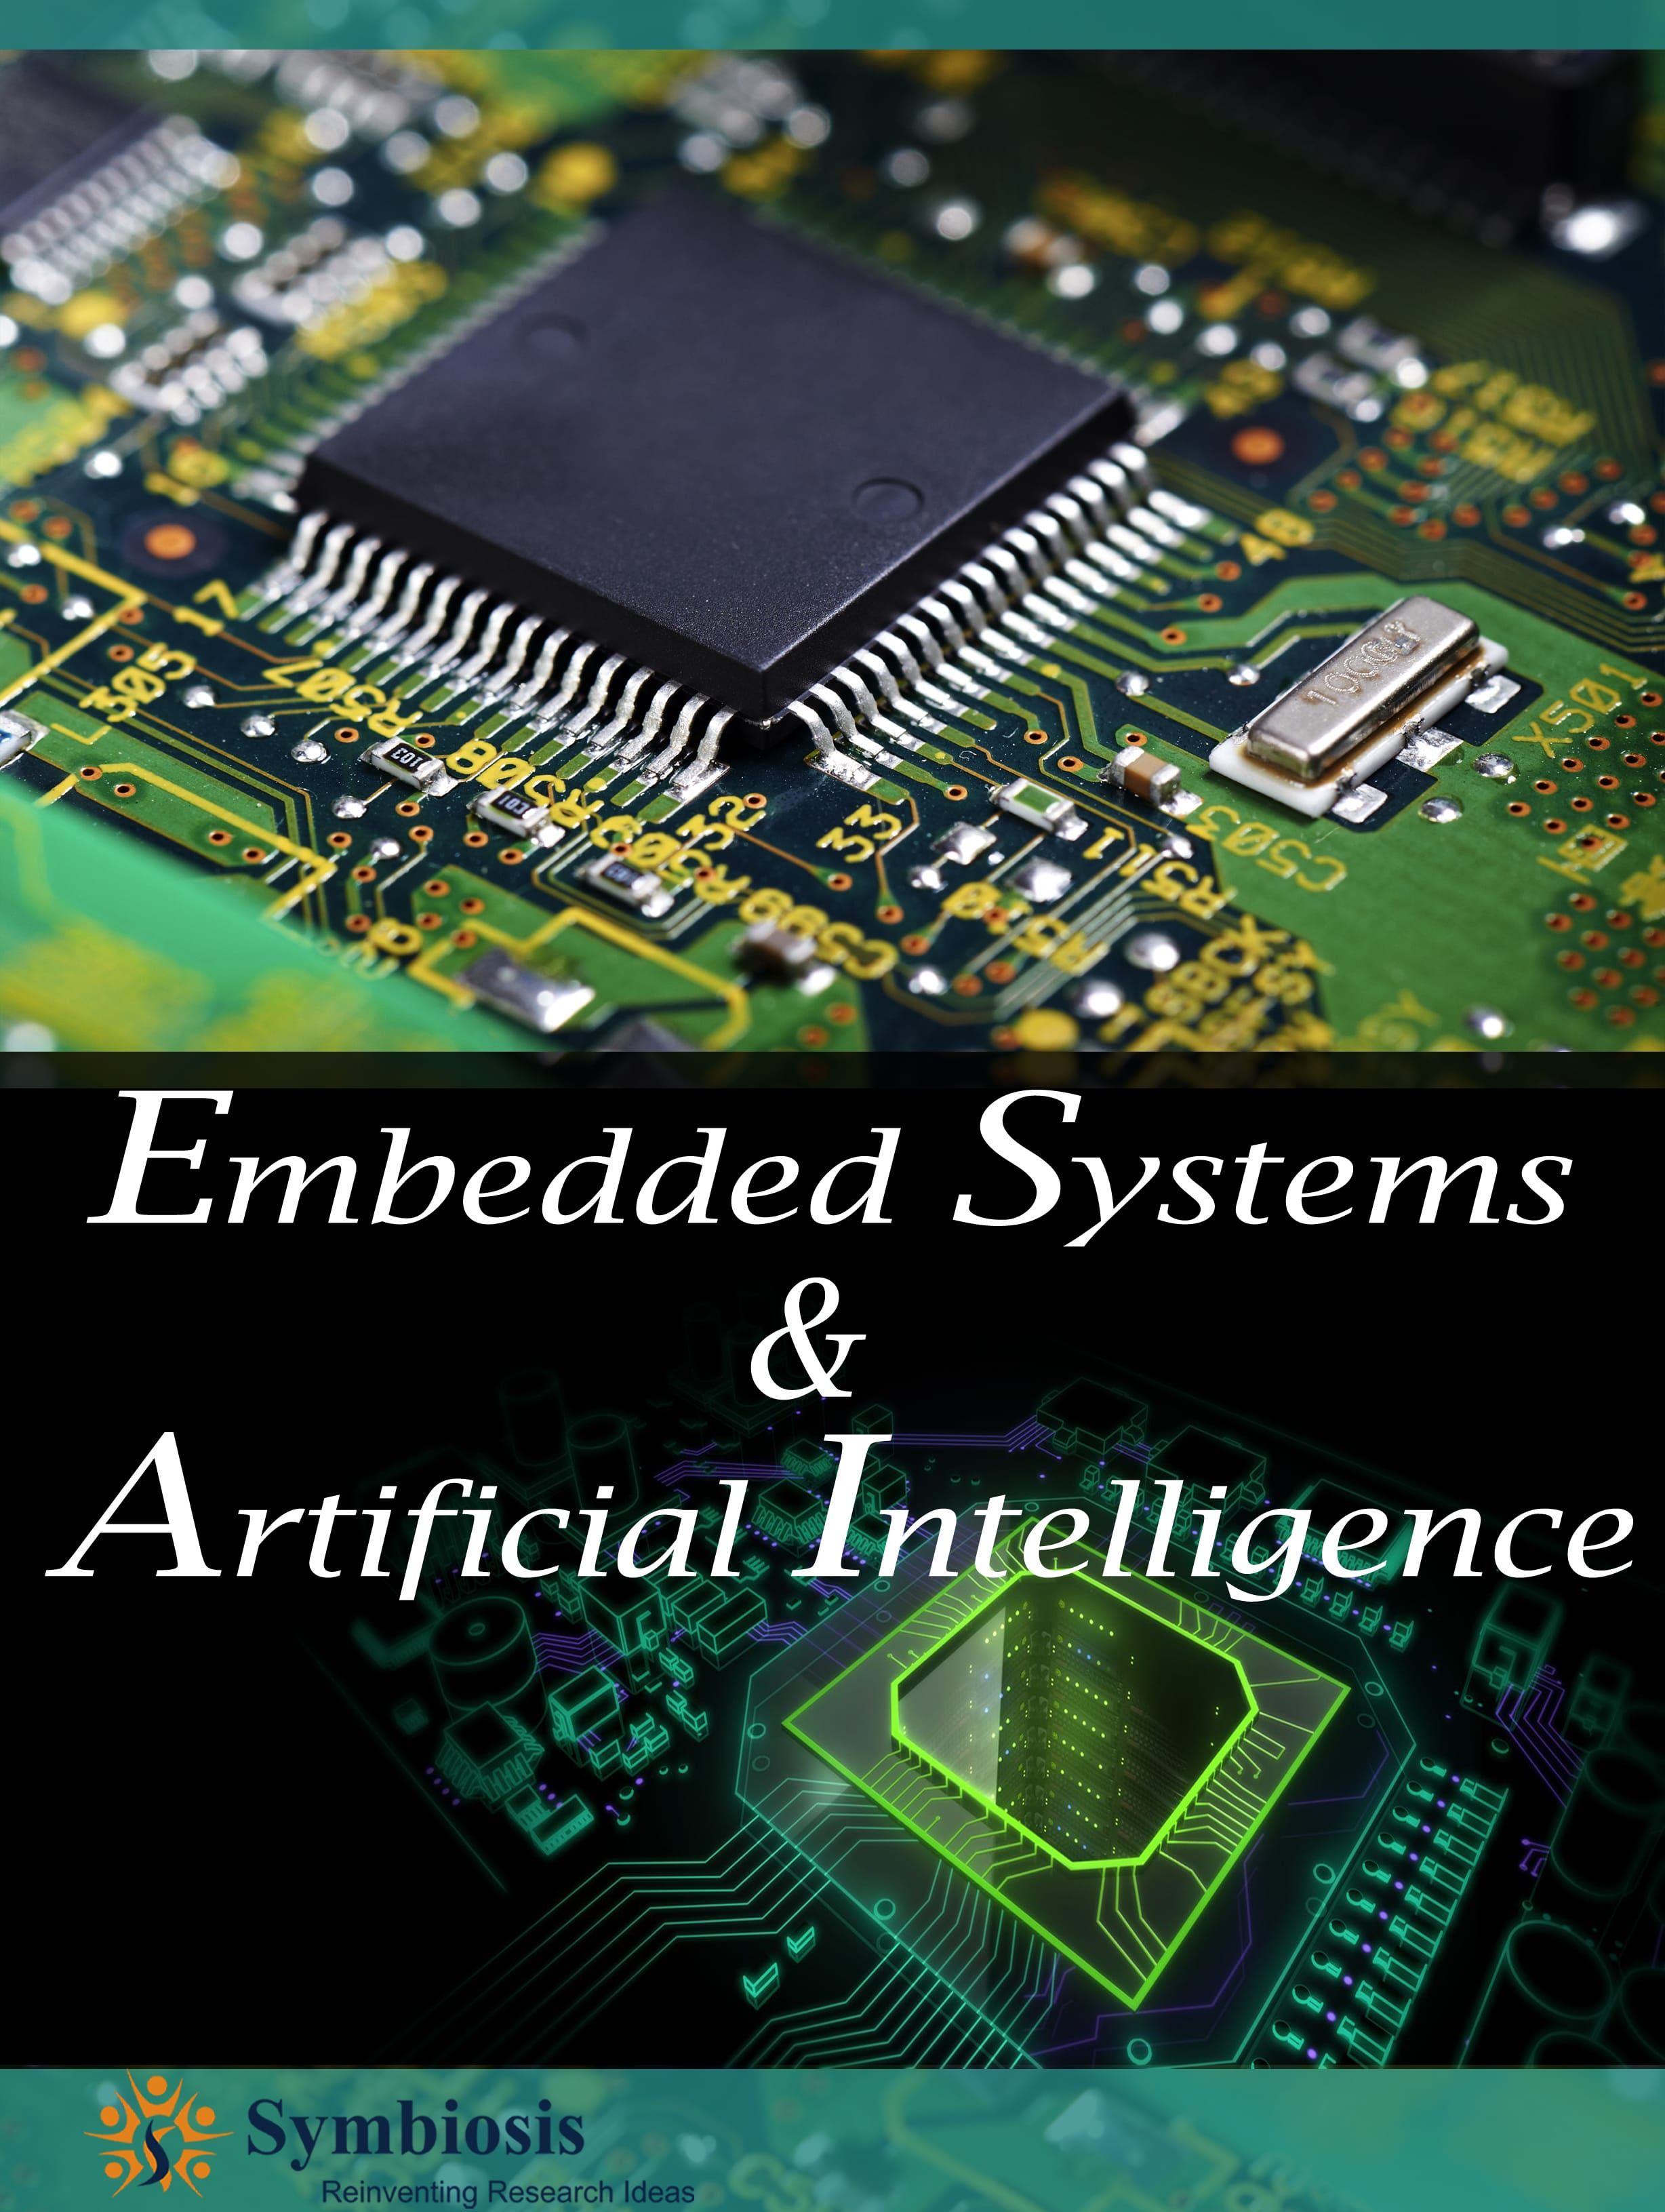 Journal of Embedded Systems | Journal of Artificial